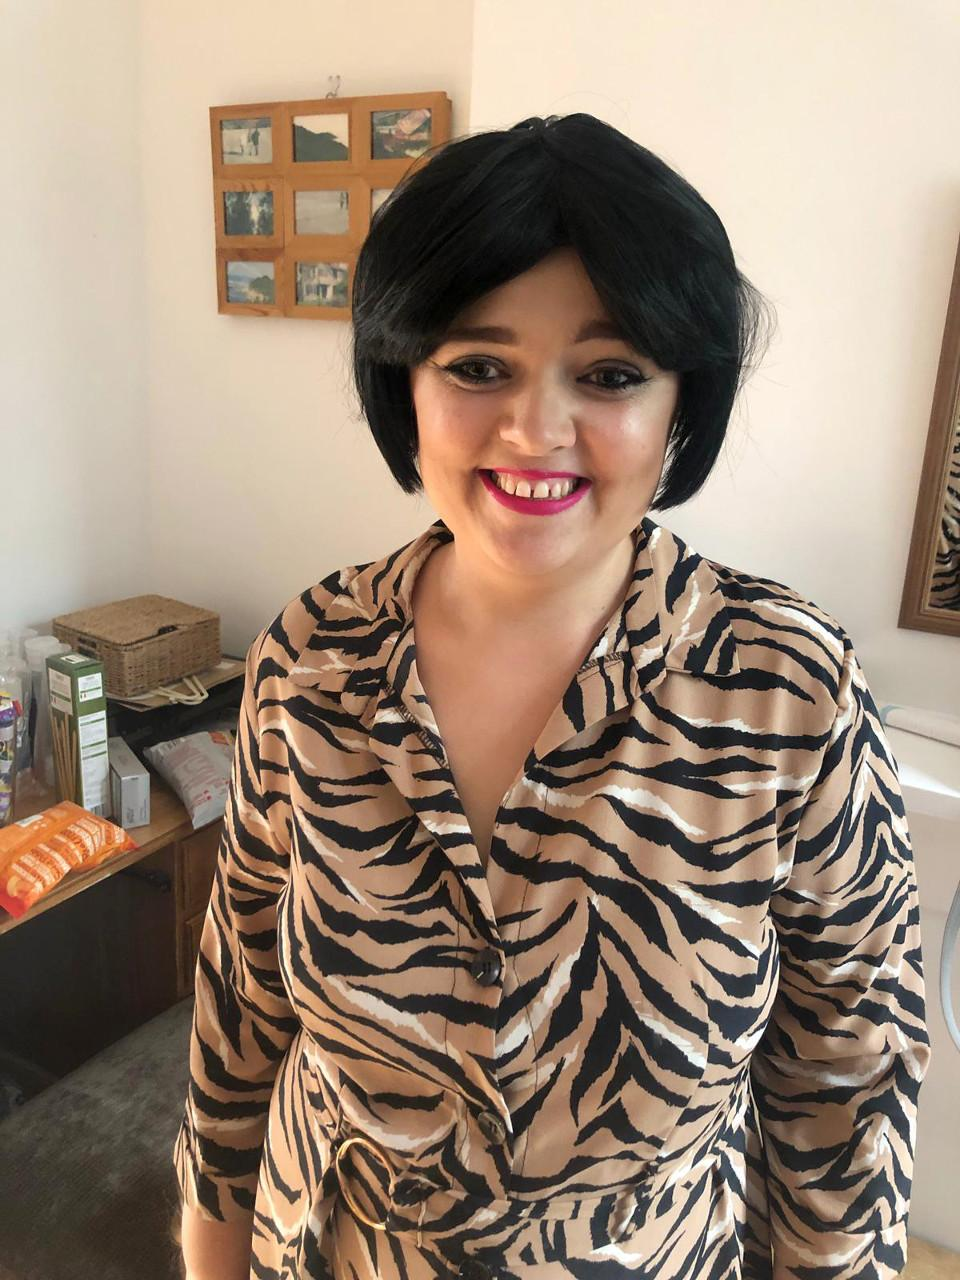 Debbie wearing a wig to look like her favourite soap character.